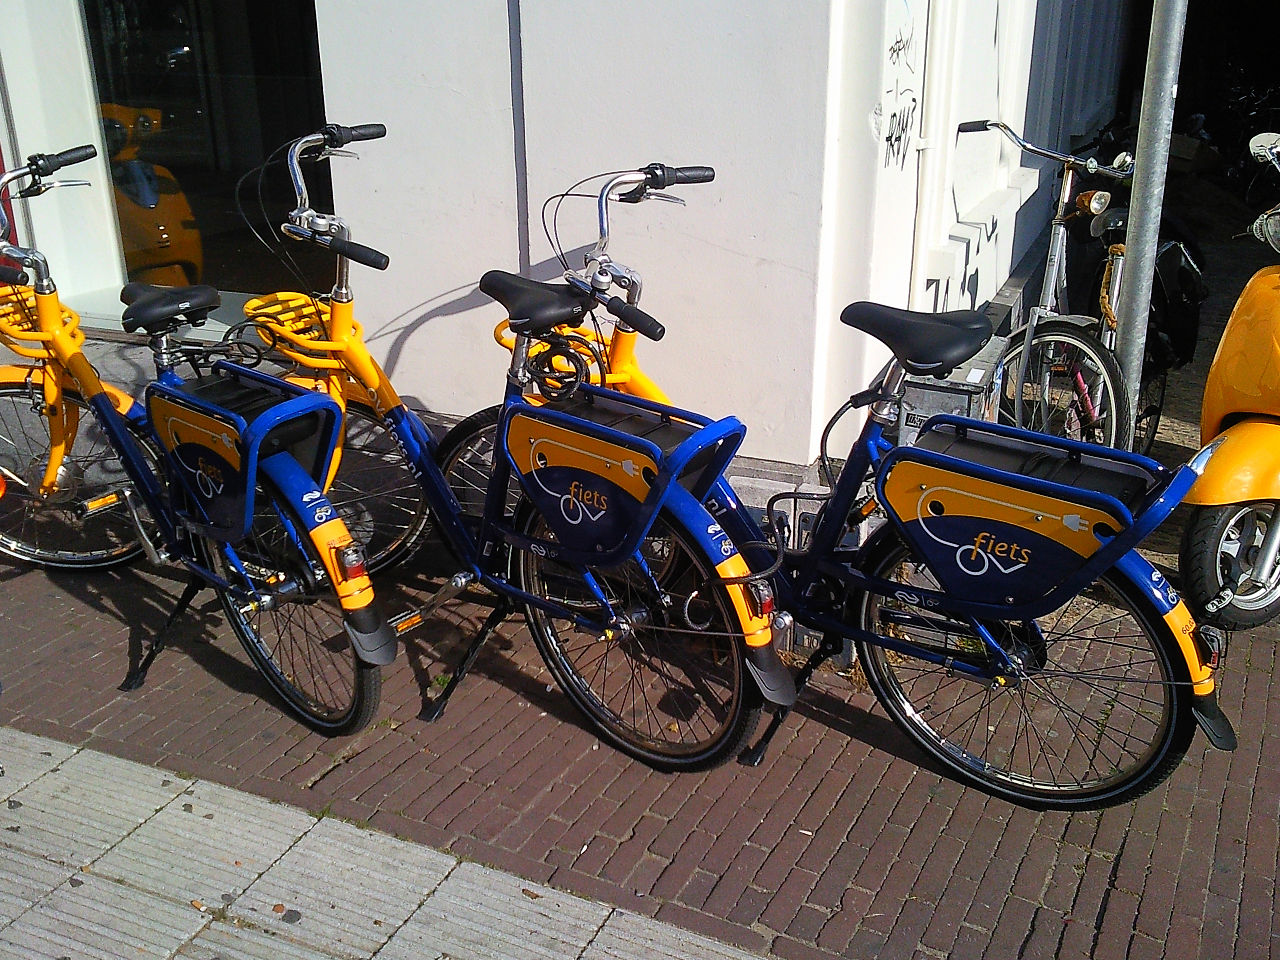 OV-bicycles in Utrecht. Photo by Brbbl Wikimedia Commons